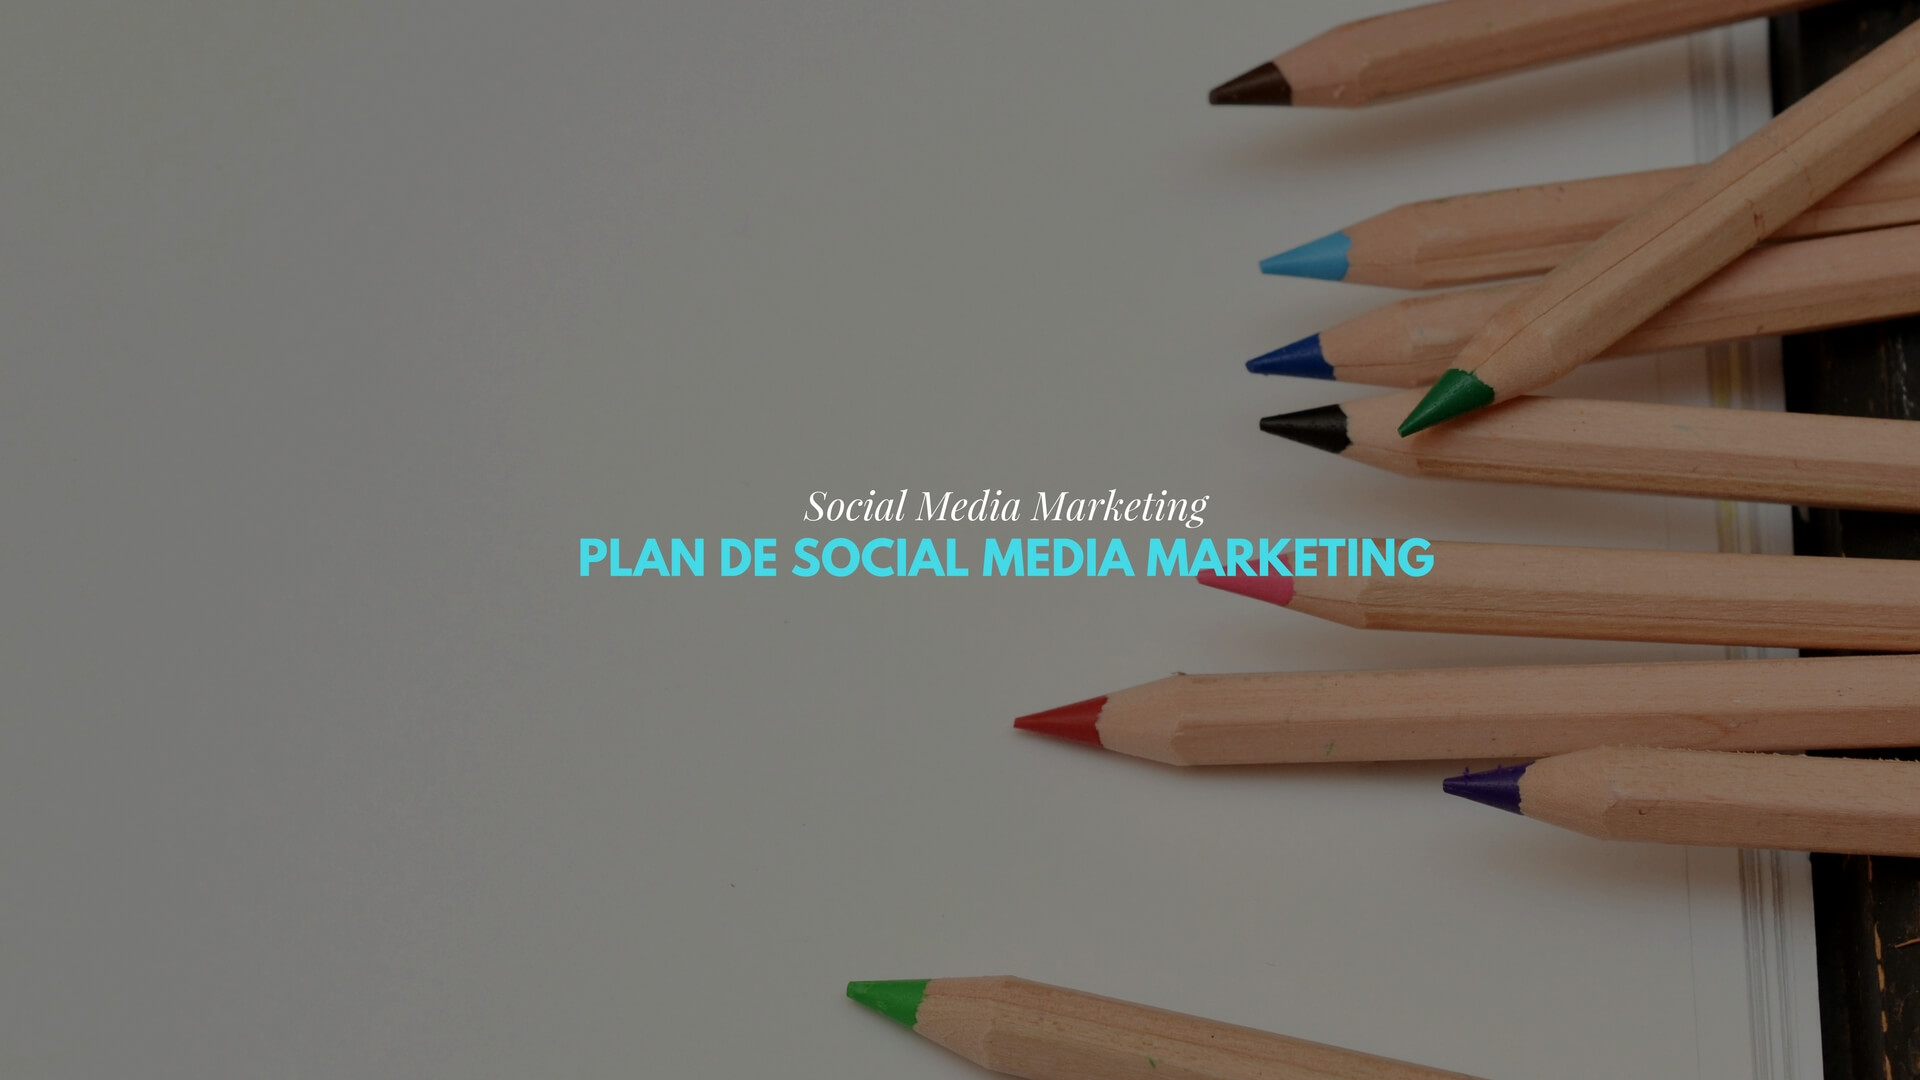 Crea tu propio Plan de Social Media Marketing para tu marca online